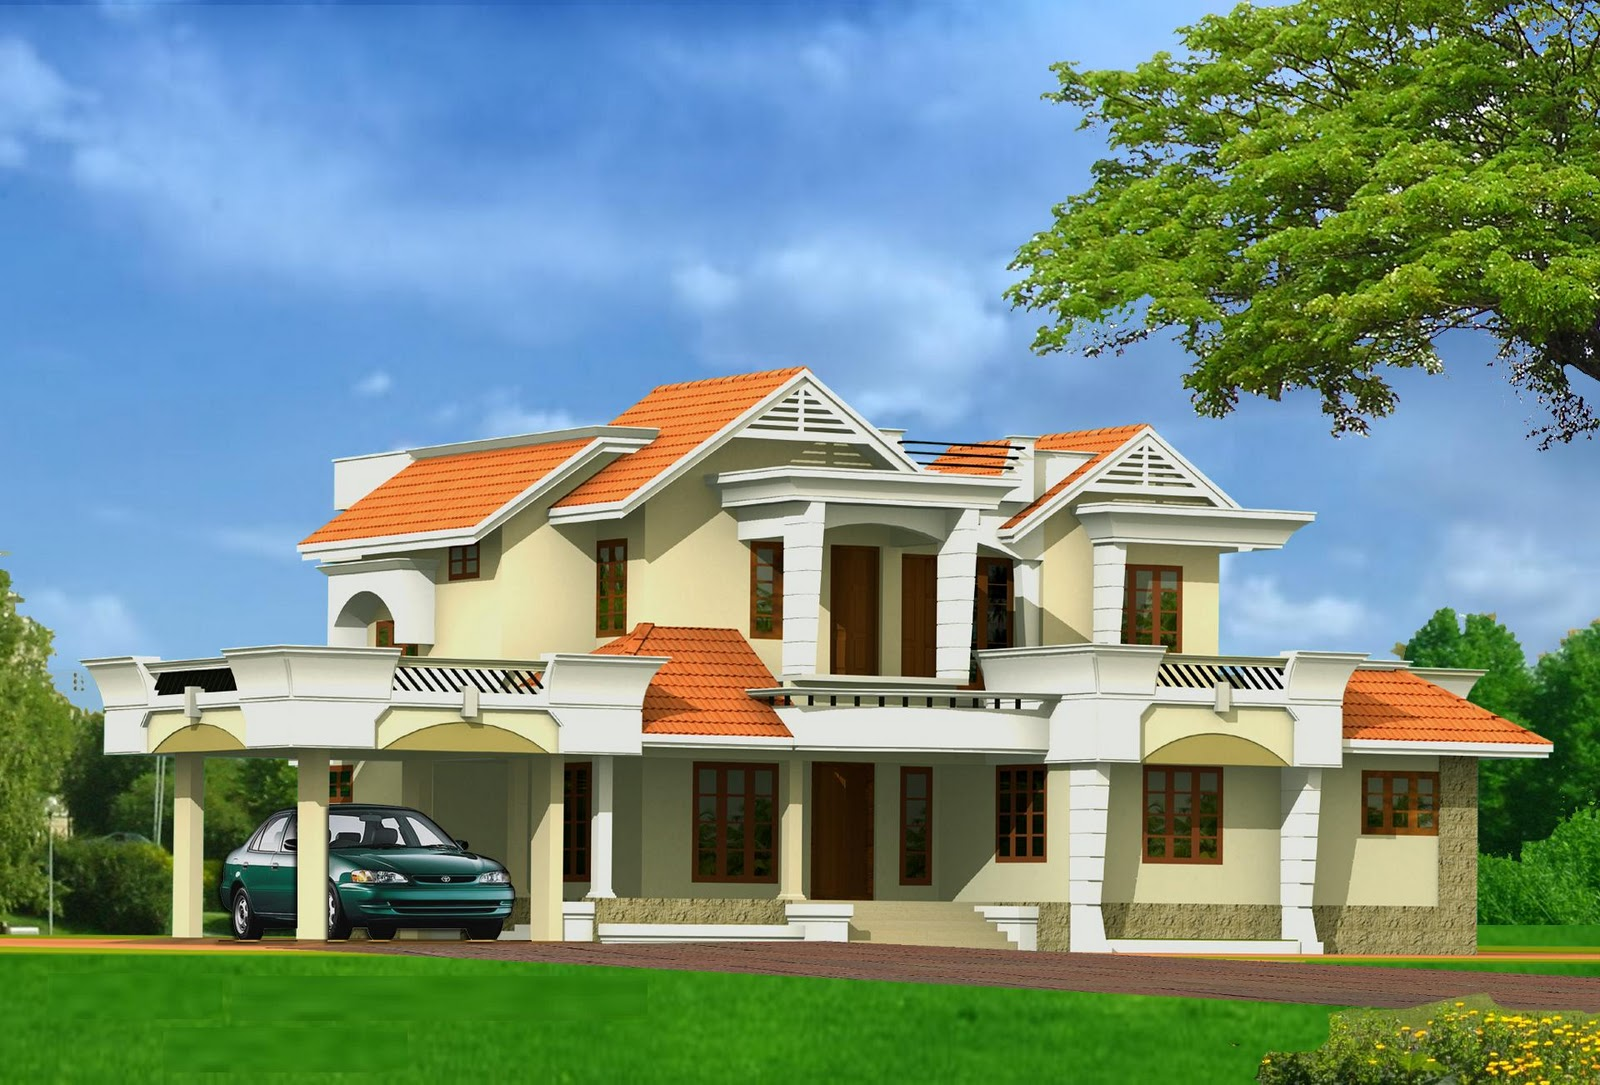 Residential House Design Of House Plans And Design Architectural Designs Of